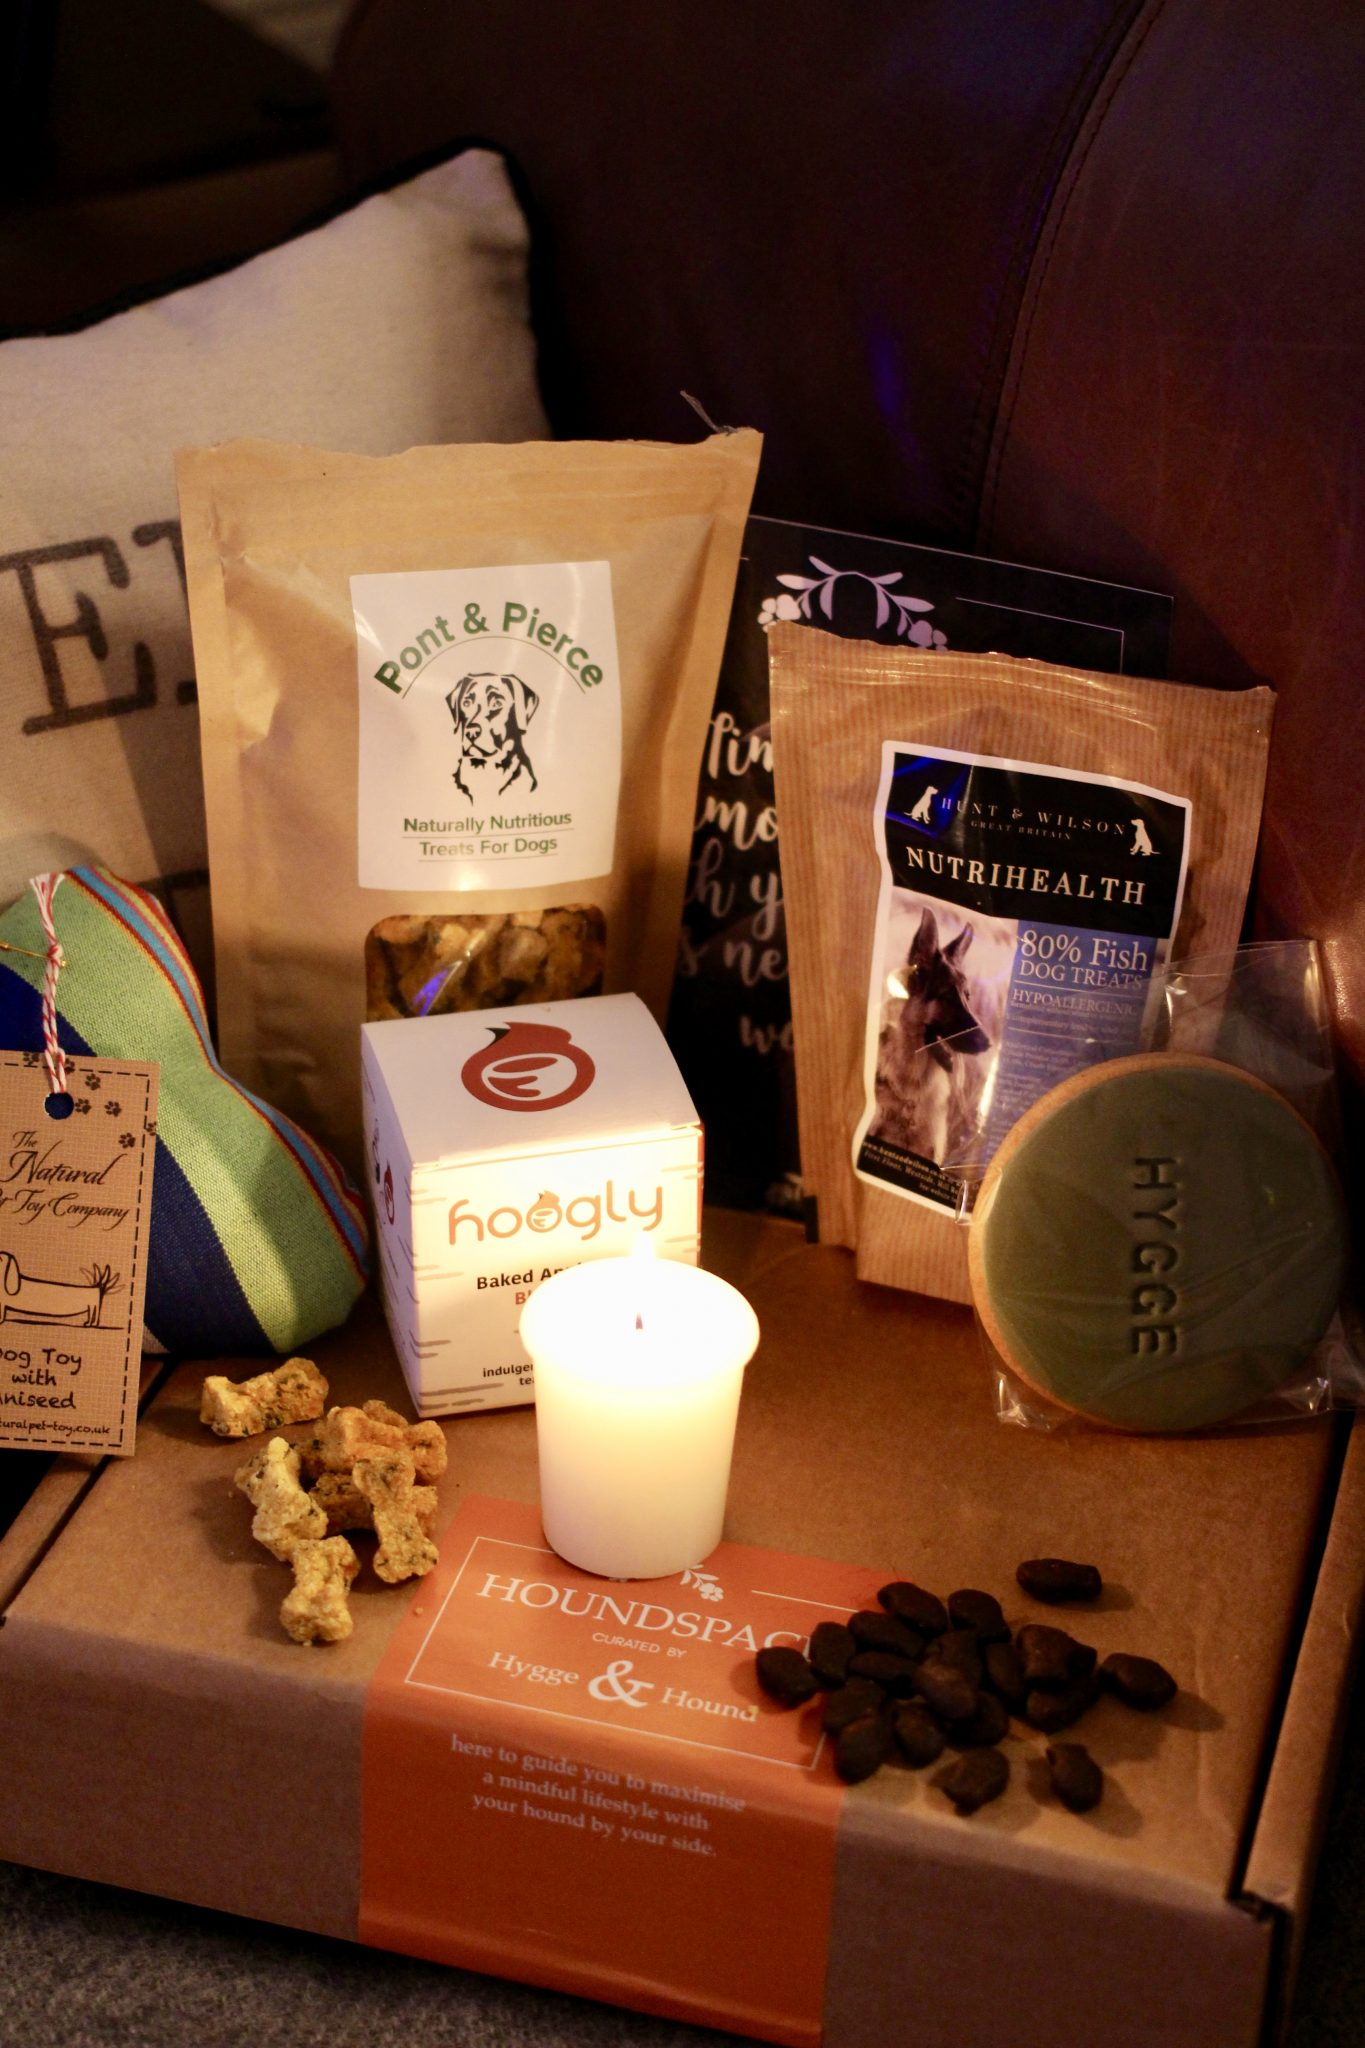 Hygge & Hound {Subscription Box} #DogTreats #SubscriptionBox #Hygge #Hound #DogFriendly www.scruffylittleterrier.com